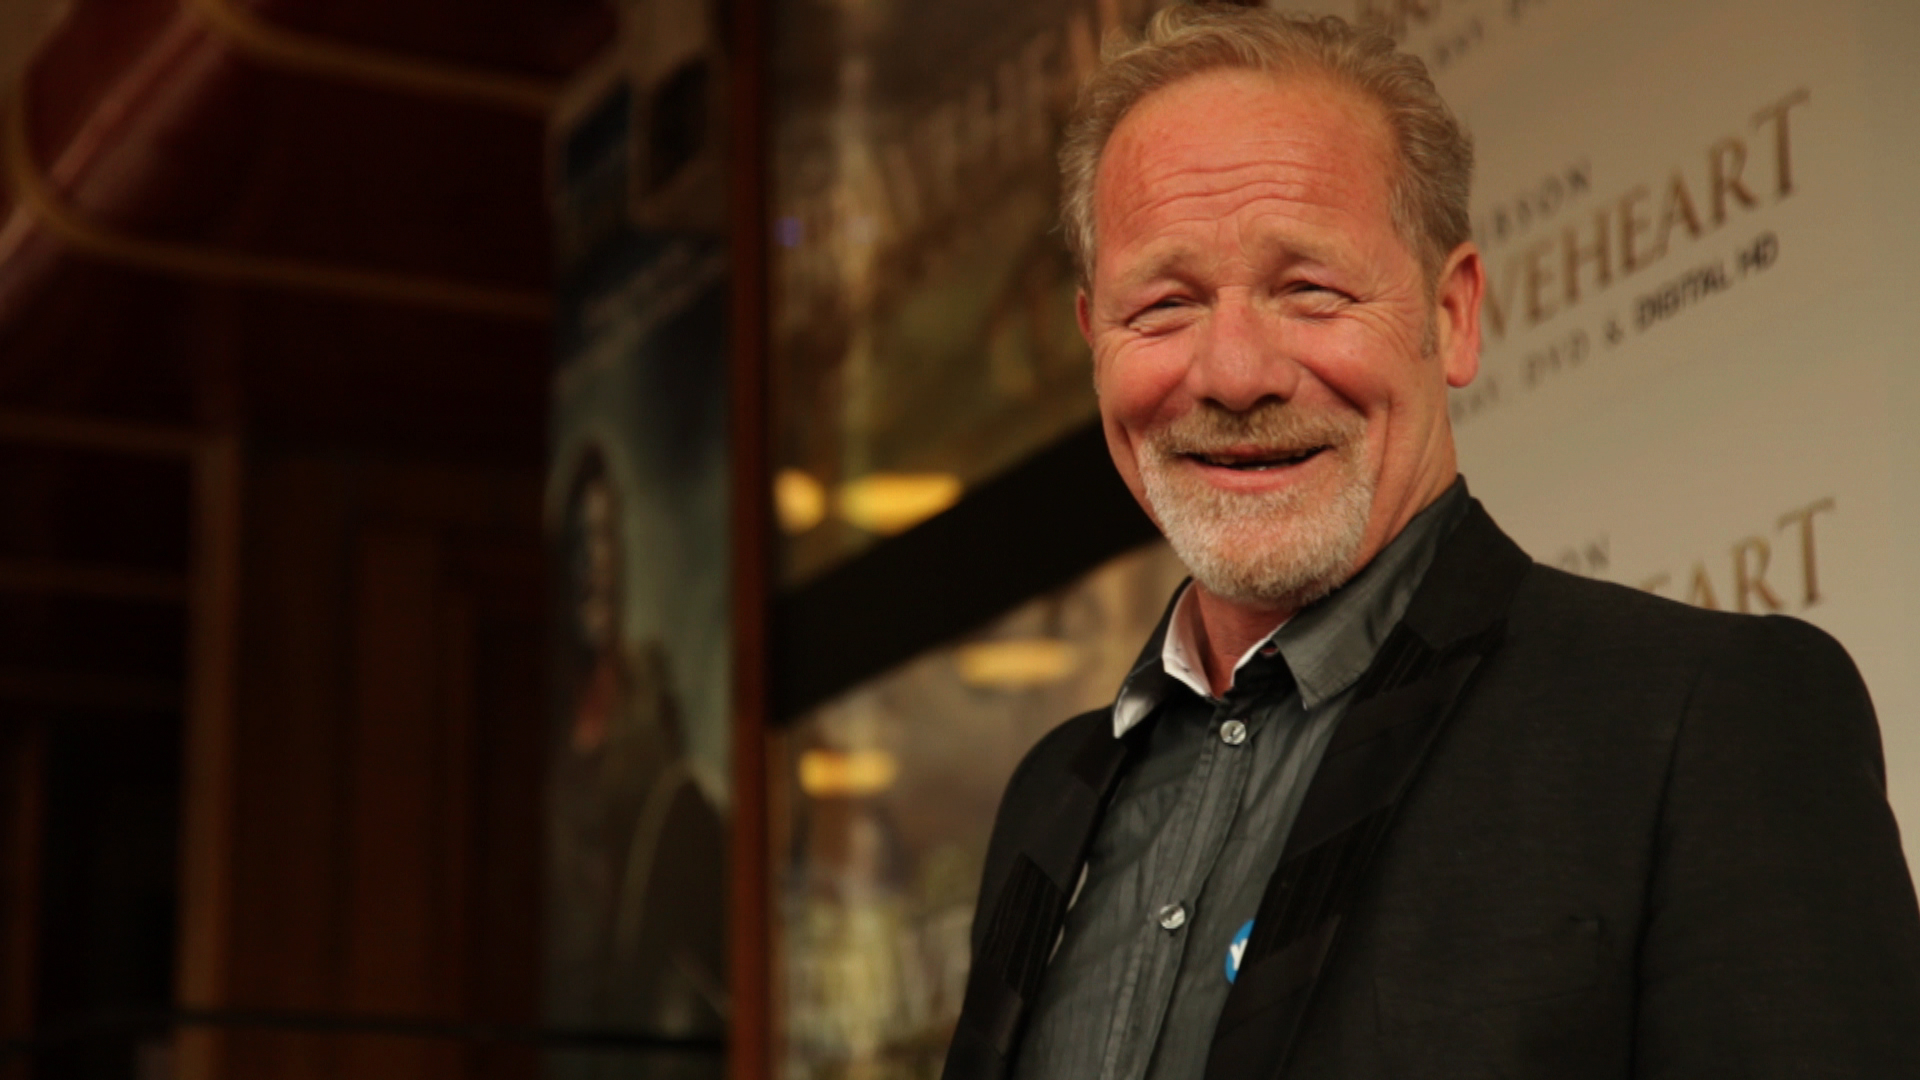 Peter Mullan at Braveheart reunion